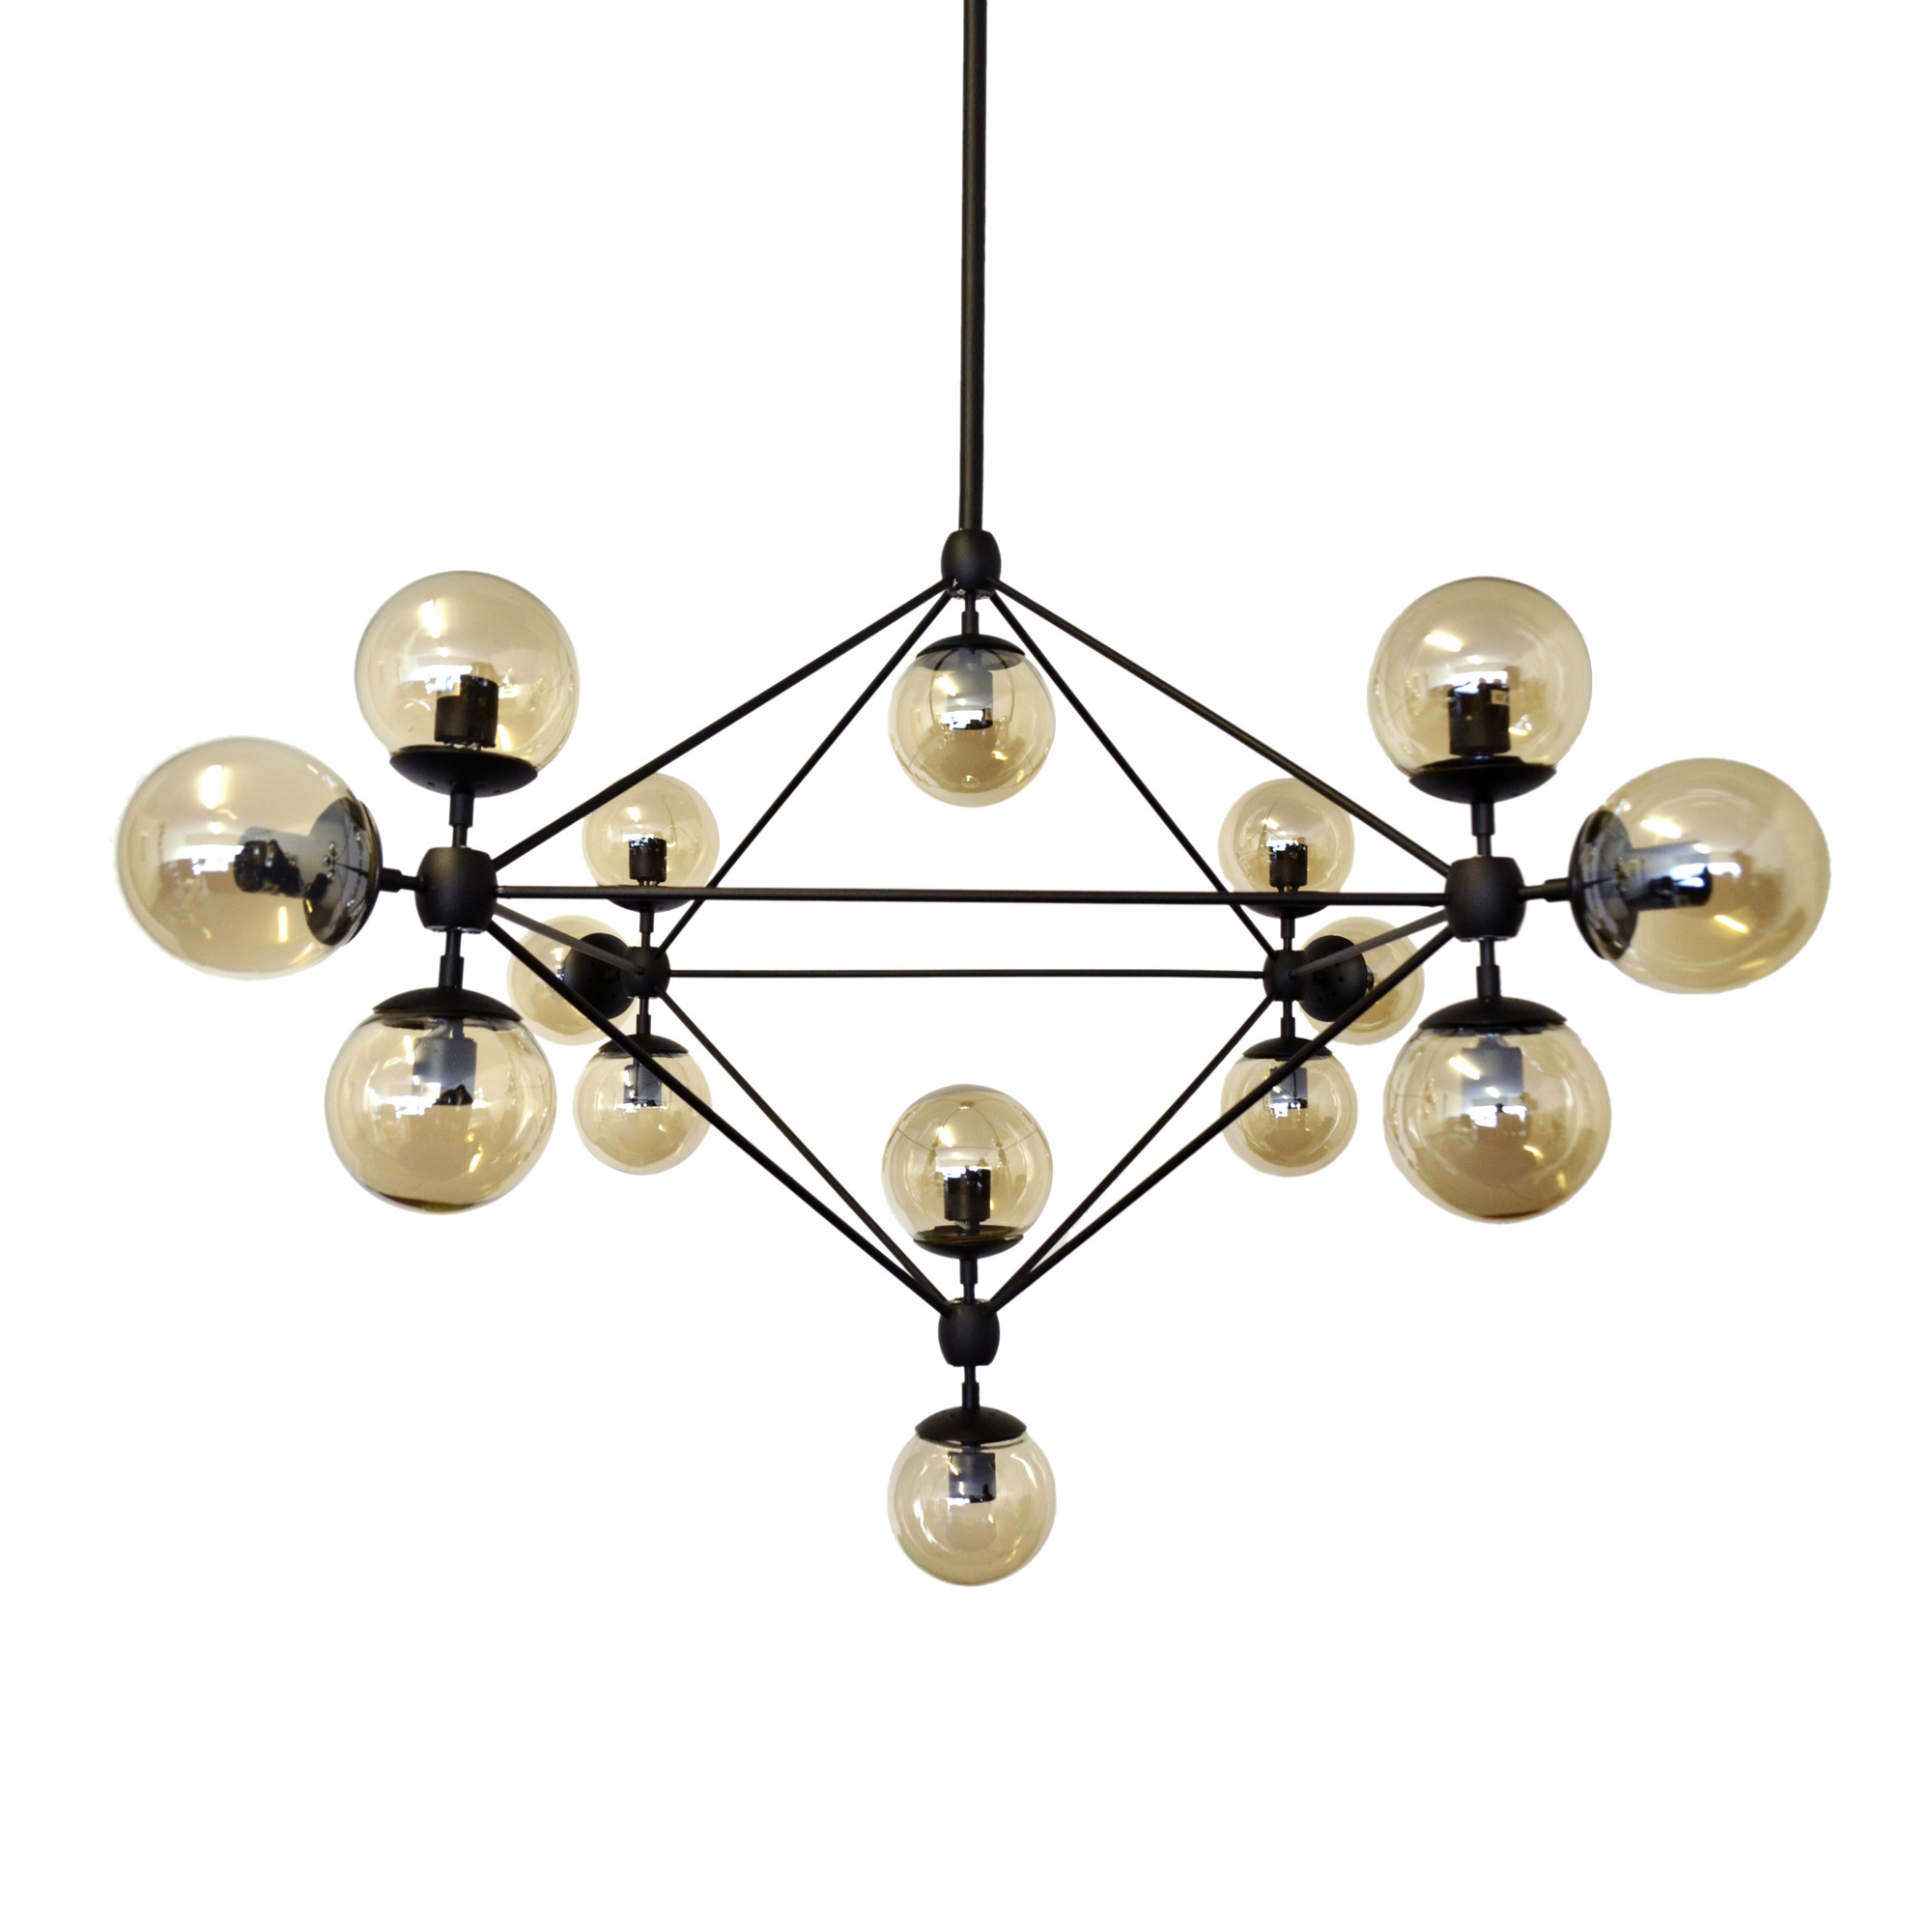 Sku Asol1208 Modo Chandelier 15 Light Replica Is Also Sometimes Listed Under The Following Manufacturer Numbers Up0097